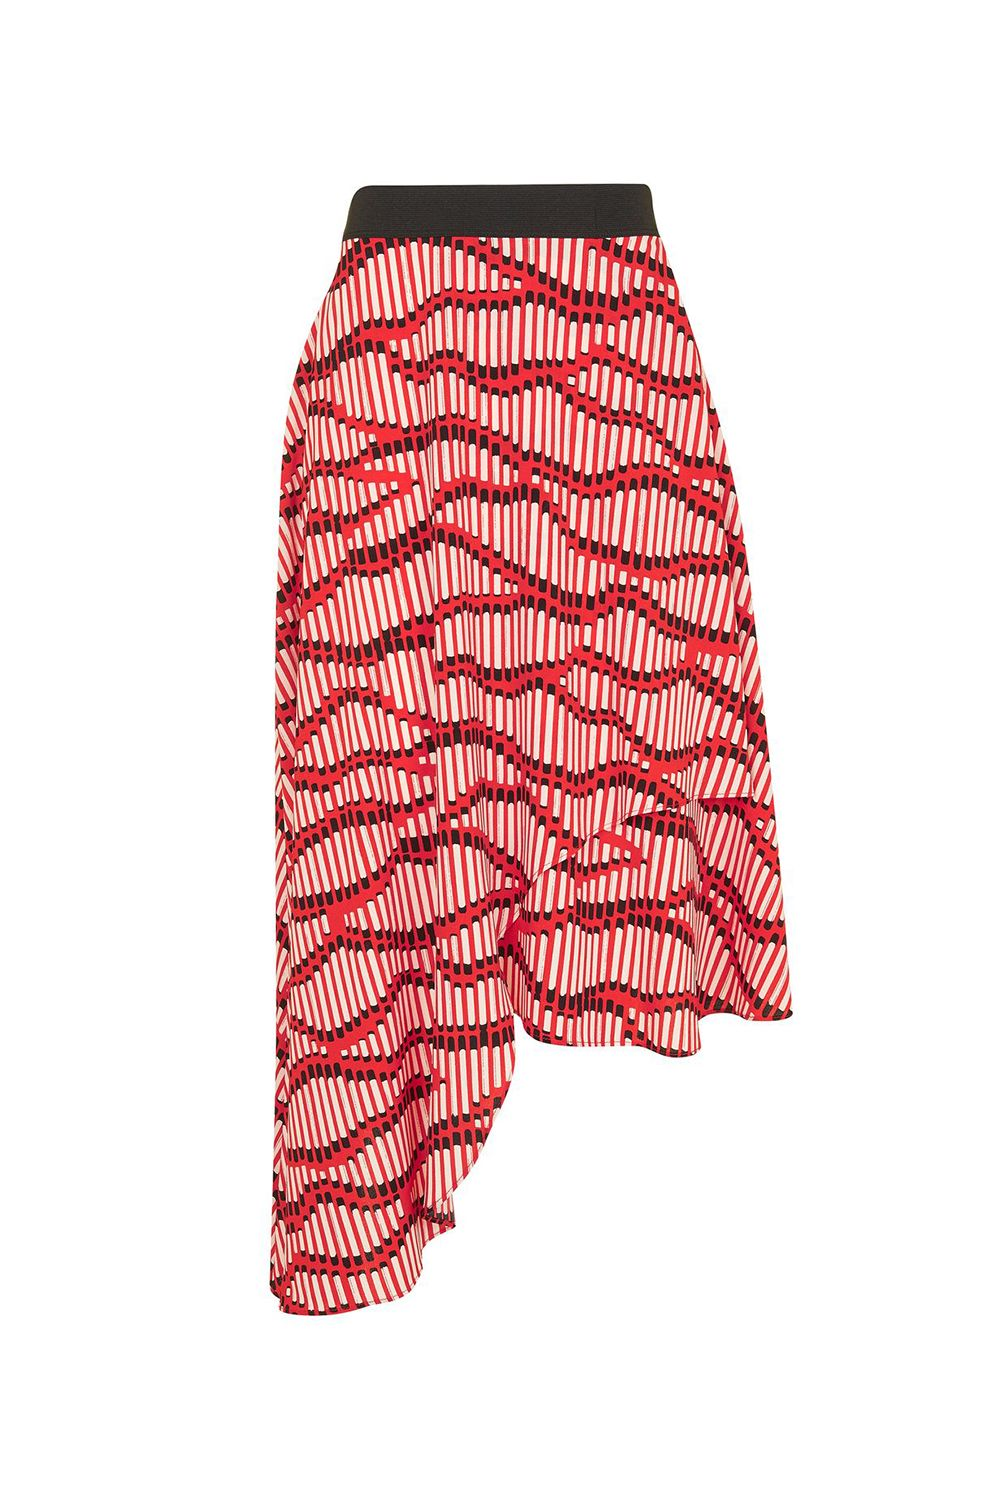 "<p>Looks way more expensive than it is, thanks to a fashion-y asymmetrical cut and coral print.</p><p><em data-redactor-tag=""em"" data-verified=""redactor"">Topshop, $40</em></p><p><strong data-redactor-tag=""strong"" data-verified=""redactor"">BUY IT: </strong><span class=""redactor-invisible-space"" data-verified=""redactor"" data-redactor-tag=""span"" data-redactor-class=""redactor-invisible-space""><strong data-redactor-tag=""strong"" data-verified=""redactor""><a href=""http://us.topshop.com/en/tsus/product/clothing-70483/skirts-70504/matchstick-asymmetrical-midi-skirt-6277352?bi=60&ps=20"" target=""_blank"" data-tracking-id=""recirc-text-link"">us.topshop.com</a>.</strong></span></p>"